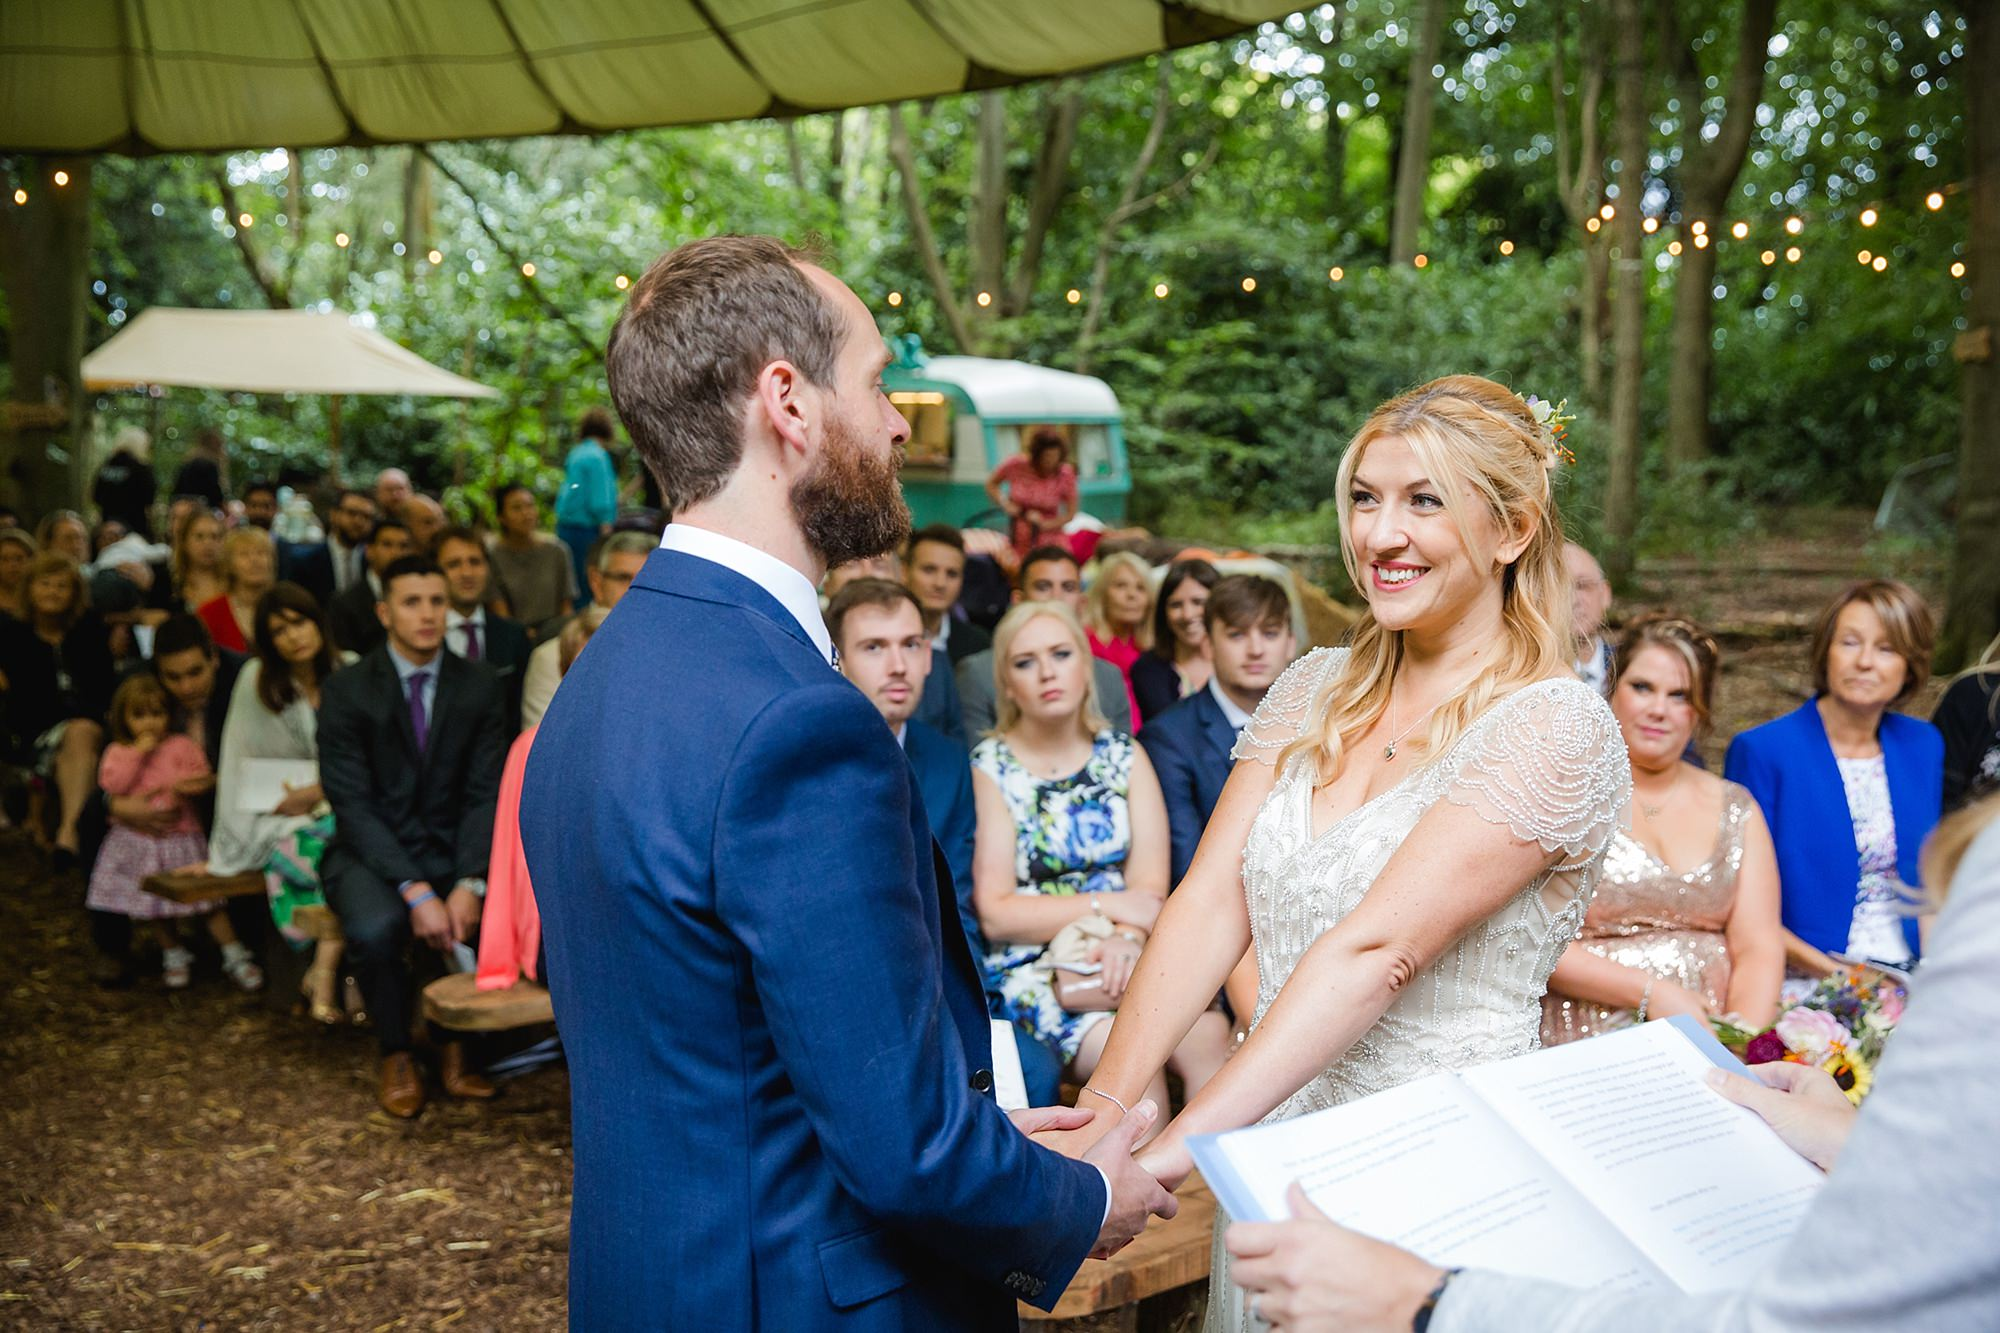 Woodland Weddings Tring portrait of bride and groom during vows